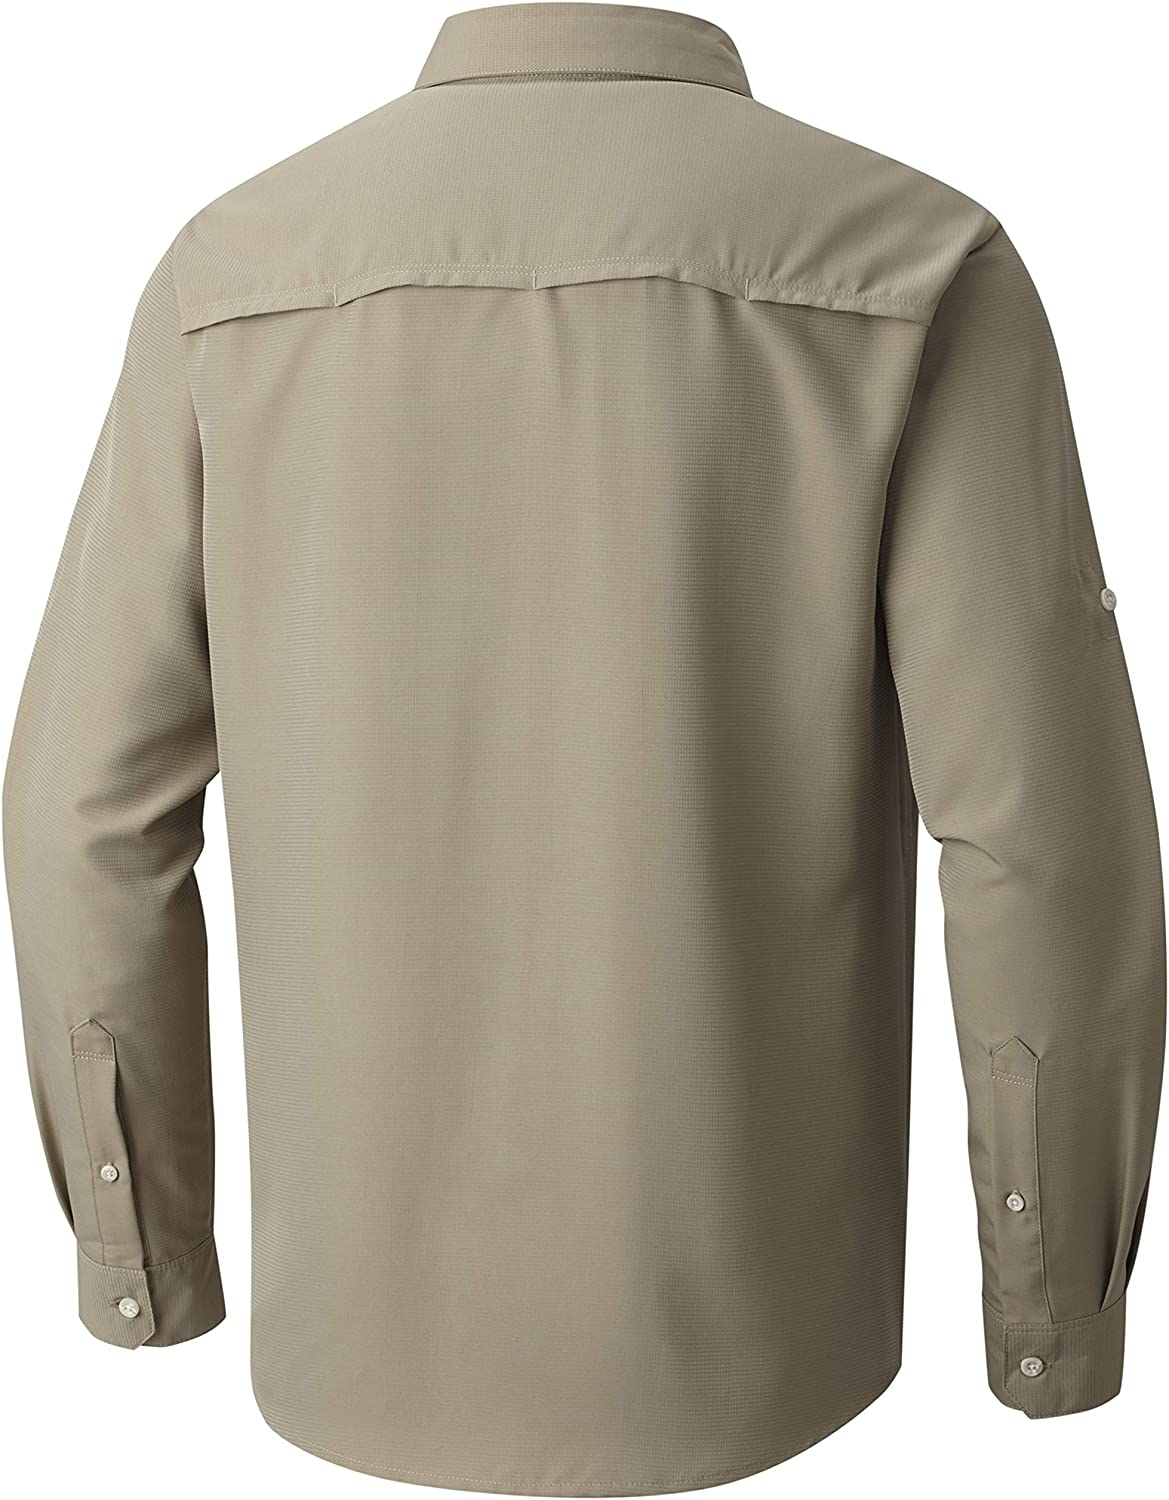 Mountain Hardwear Mens Canyon Solid Long Sleeve Shirt for Hiking and Casual Everyday Camping Climbing